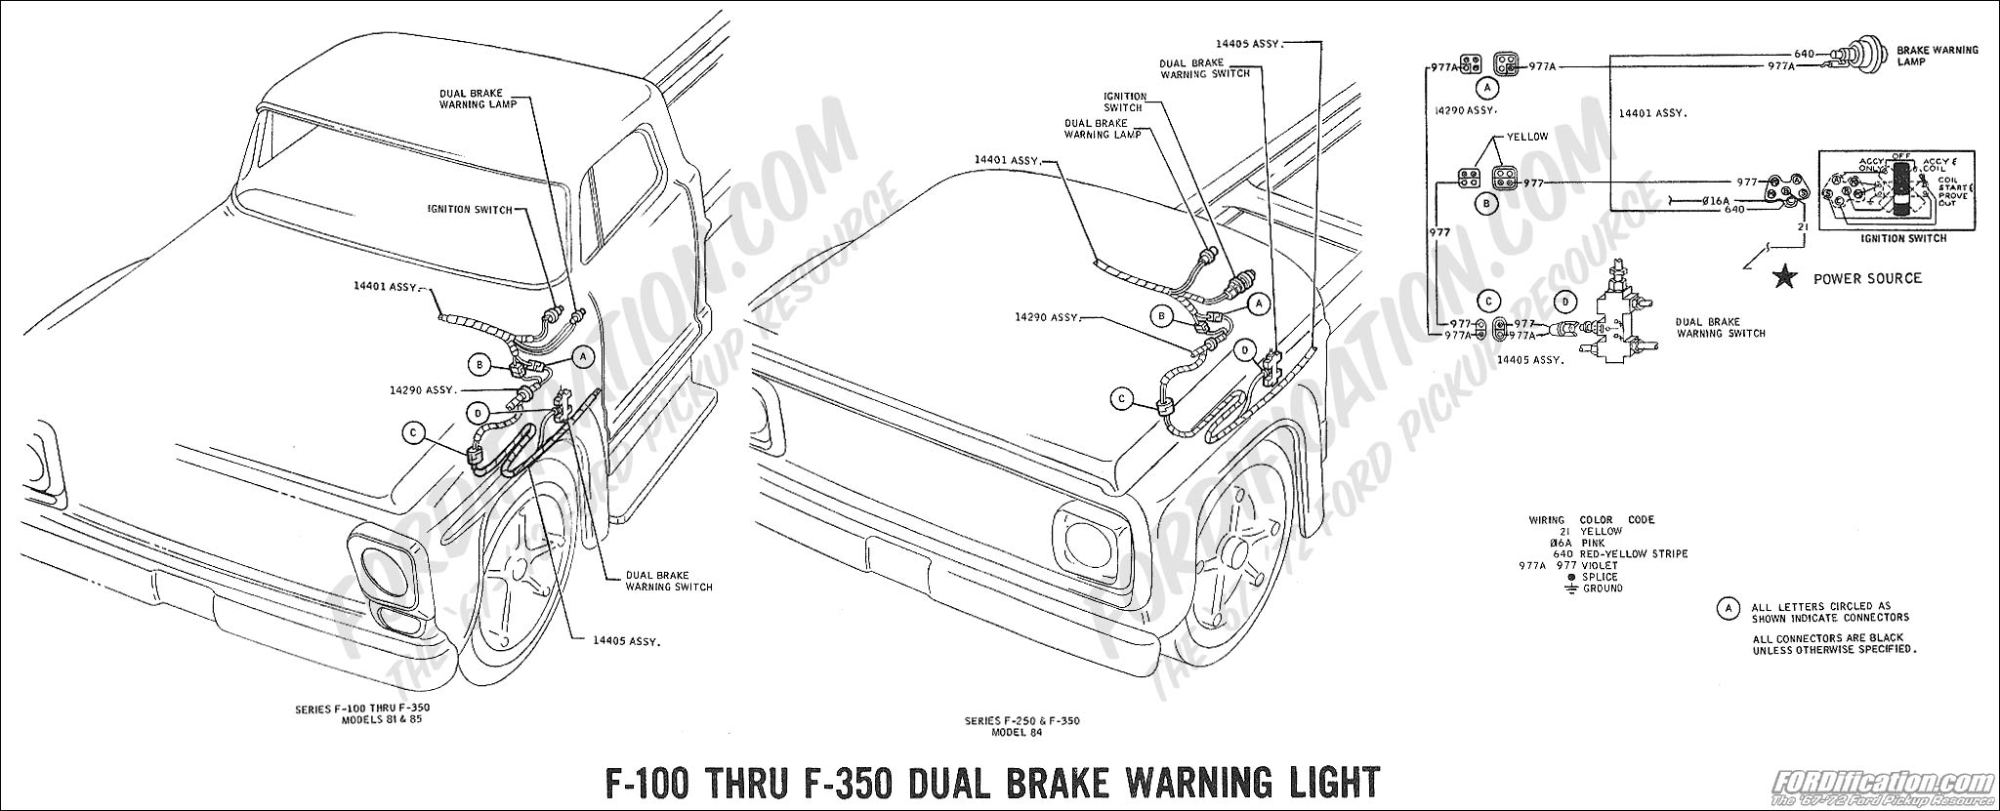 hight resolution of  ford tail light wiring diagram 1969 f 100 thru f 350 dual brake warning light